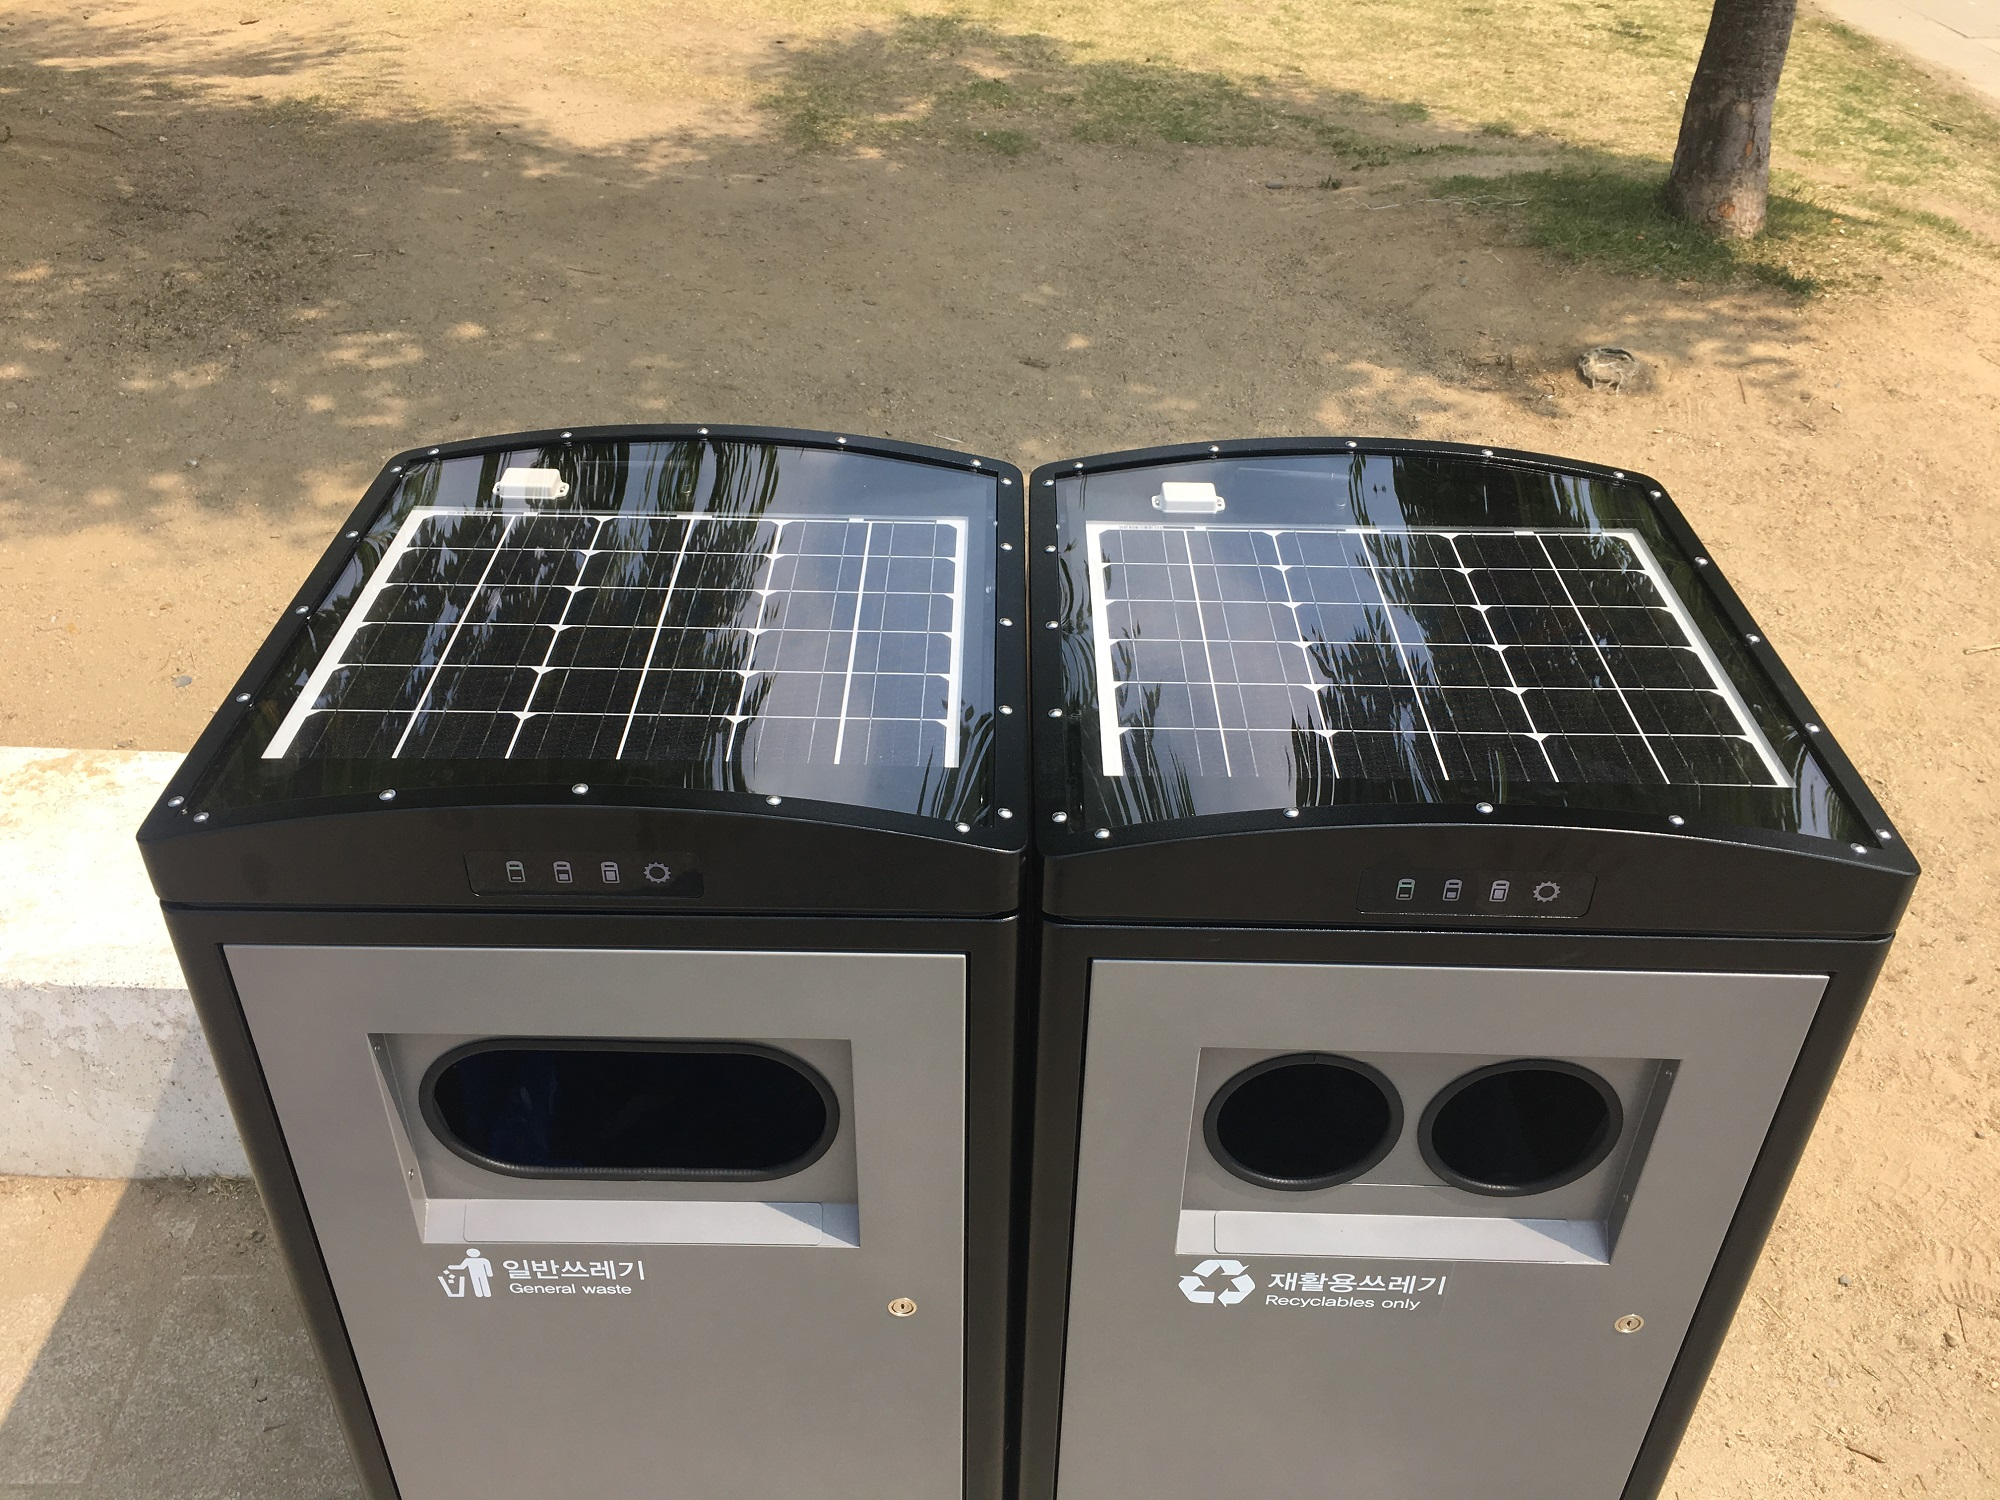 Solar-powered garbage compacting bins in Seoul Zoo